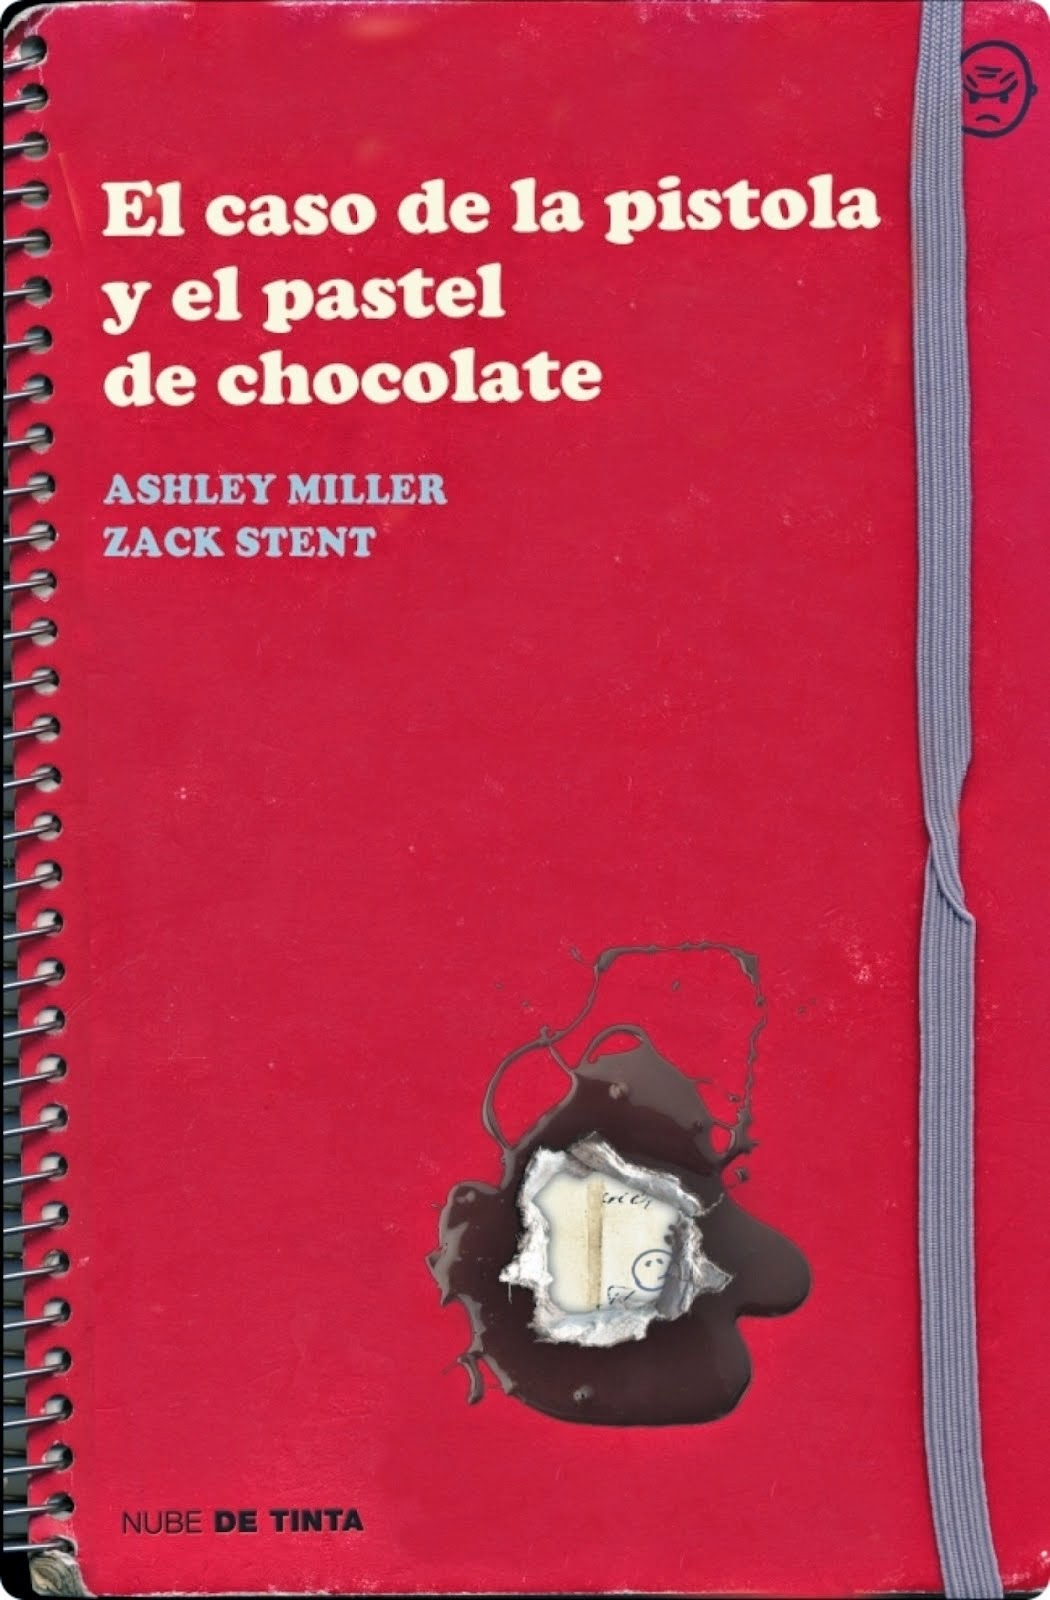 El caso de la pistola y el pastel de chocolate (Ashley Miller, Zack Stent)